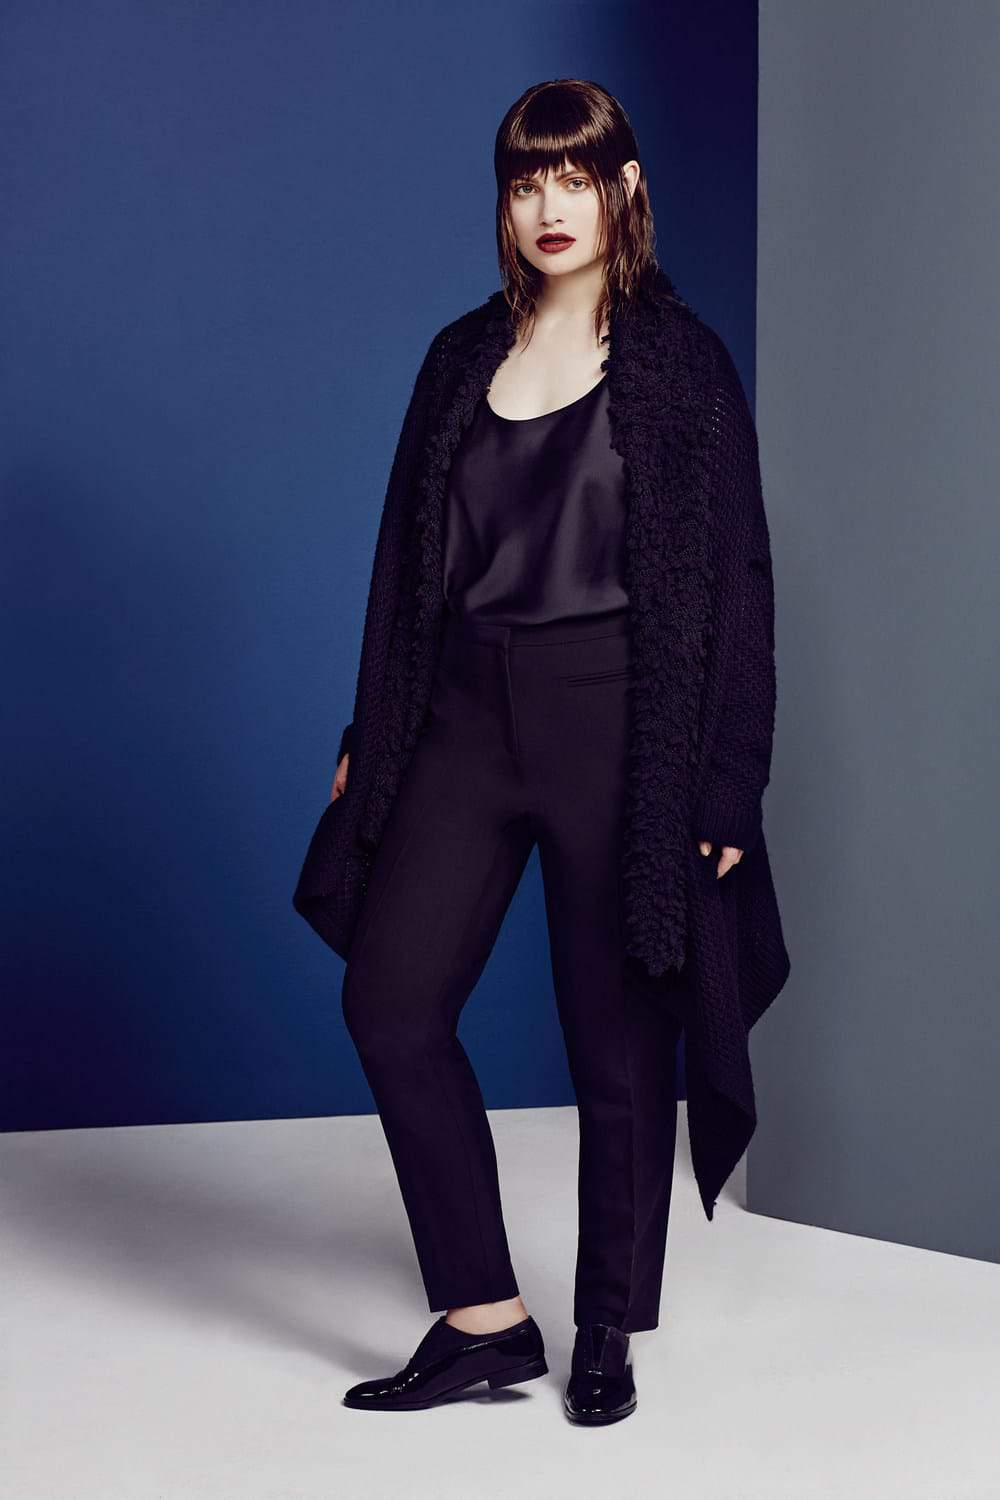 First Look at UK Plus Size Retailer- Fall 2015 Look Book from Evans on TheCurvyFashionista.com